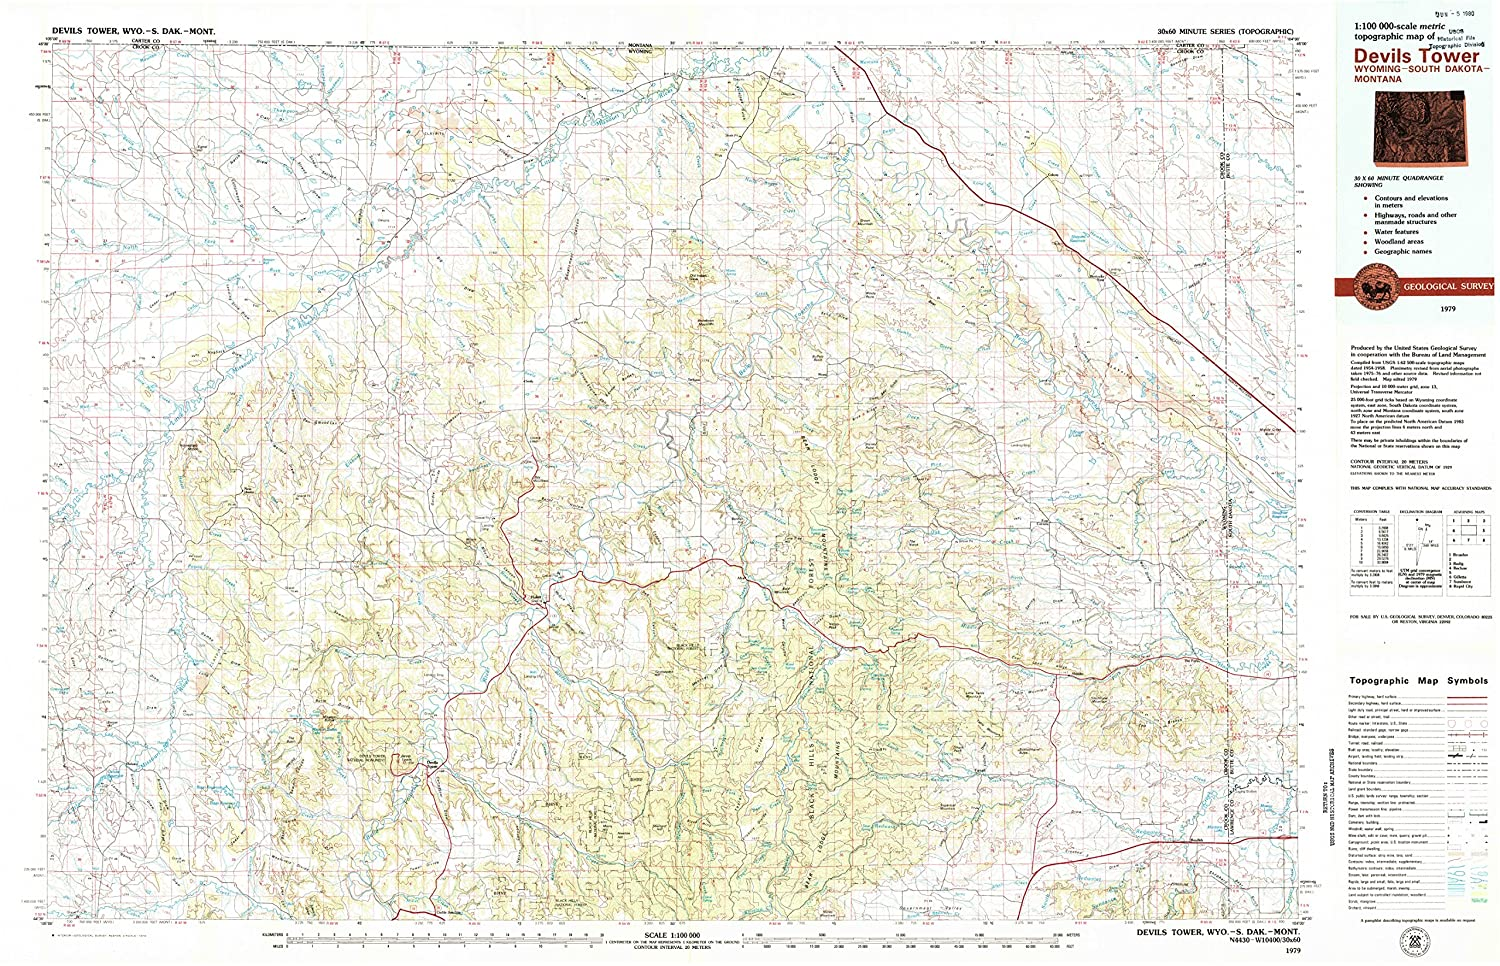 Amazon devils tower wy topo map 1100000 scale 30 x 60 amazon devils tower wy topo map 1100000 scale 30 x 60 minute historical 1979 updated 1979 242 x 375 in paper sports outdoors publicscrutiny Choice Image